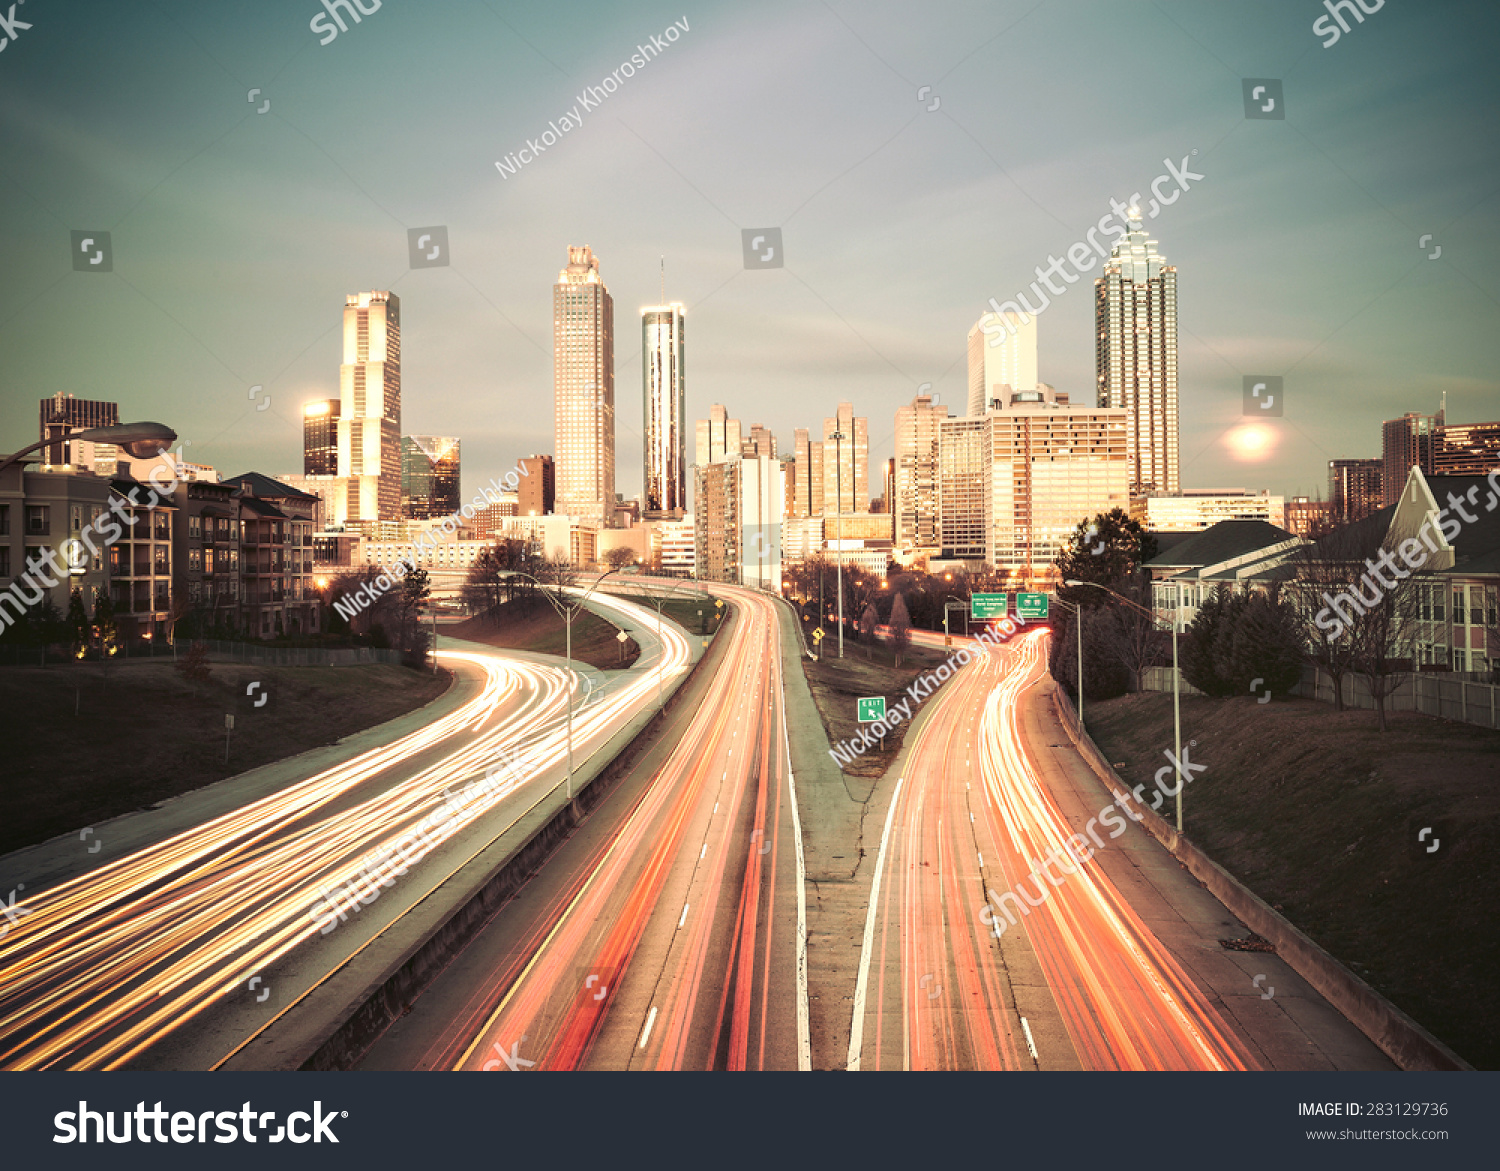 Vintage style image of Atlanta skyline Georgia USA